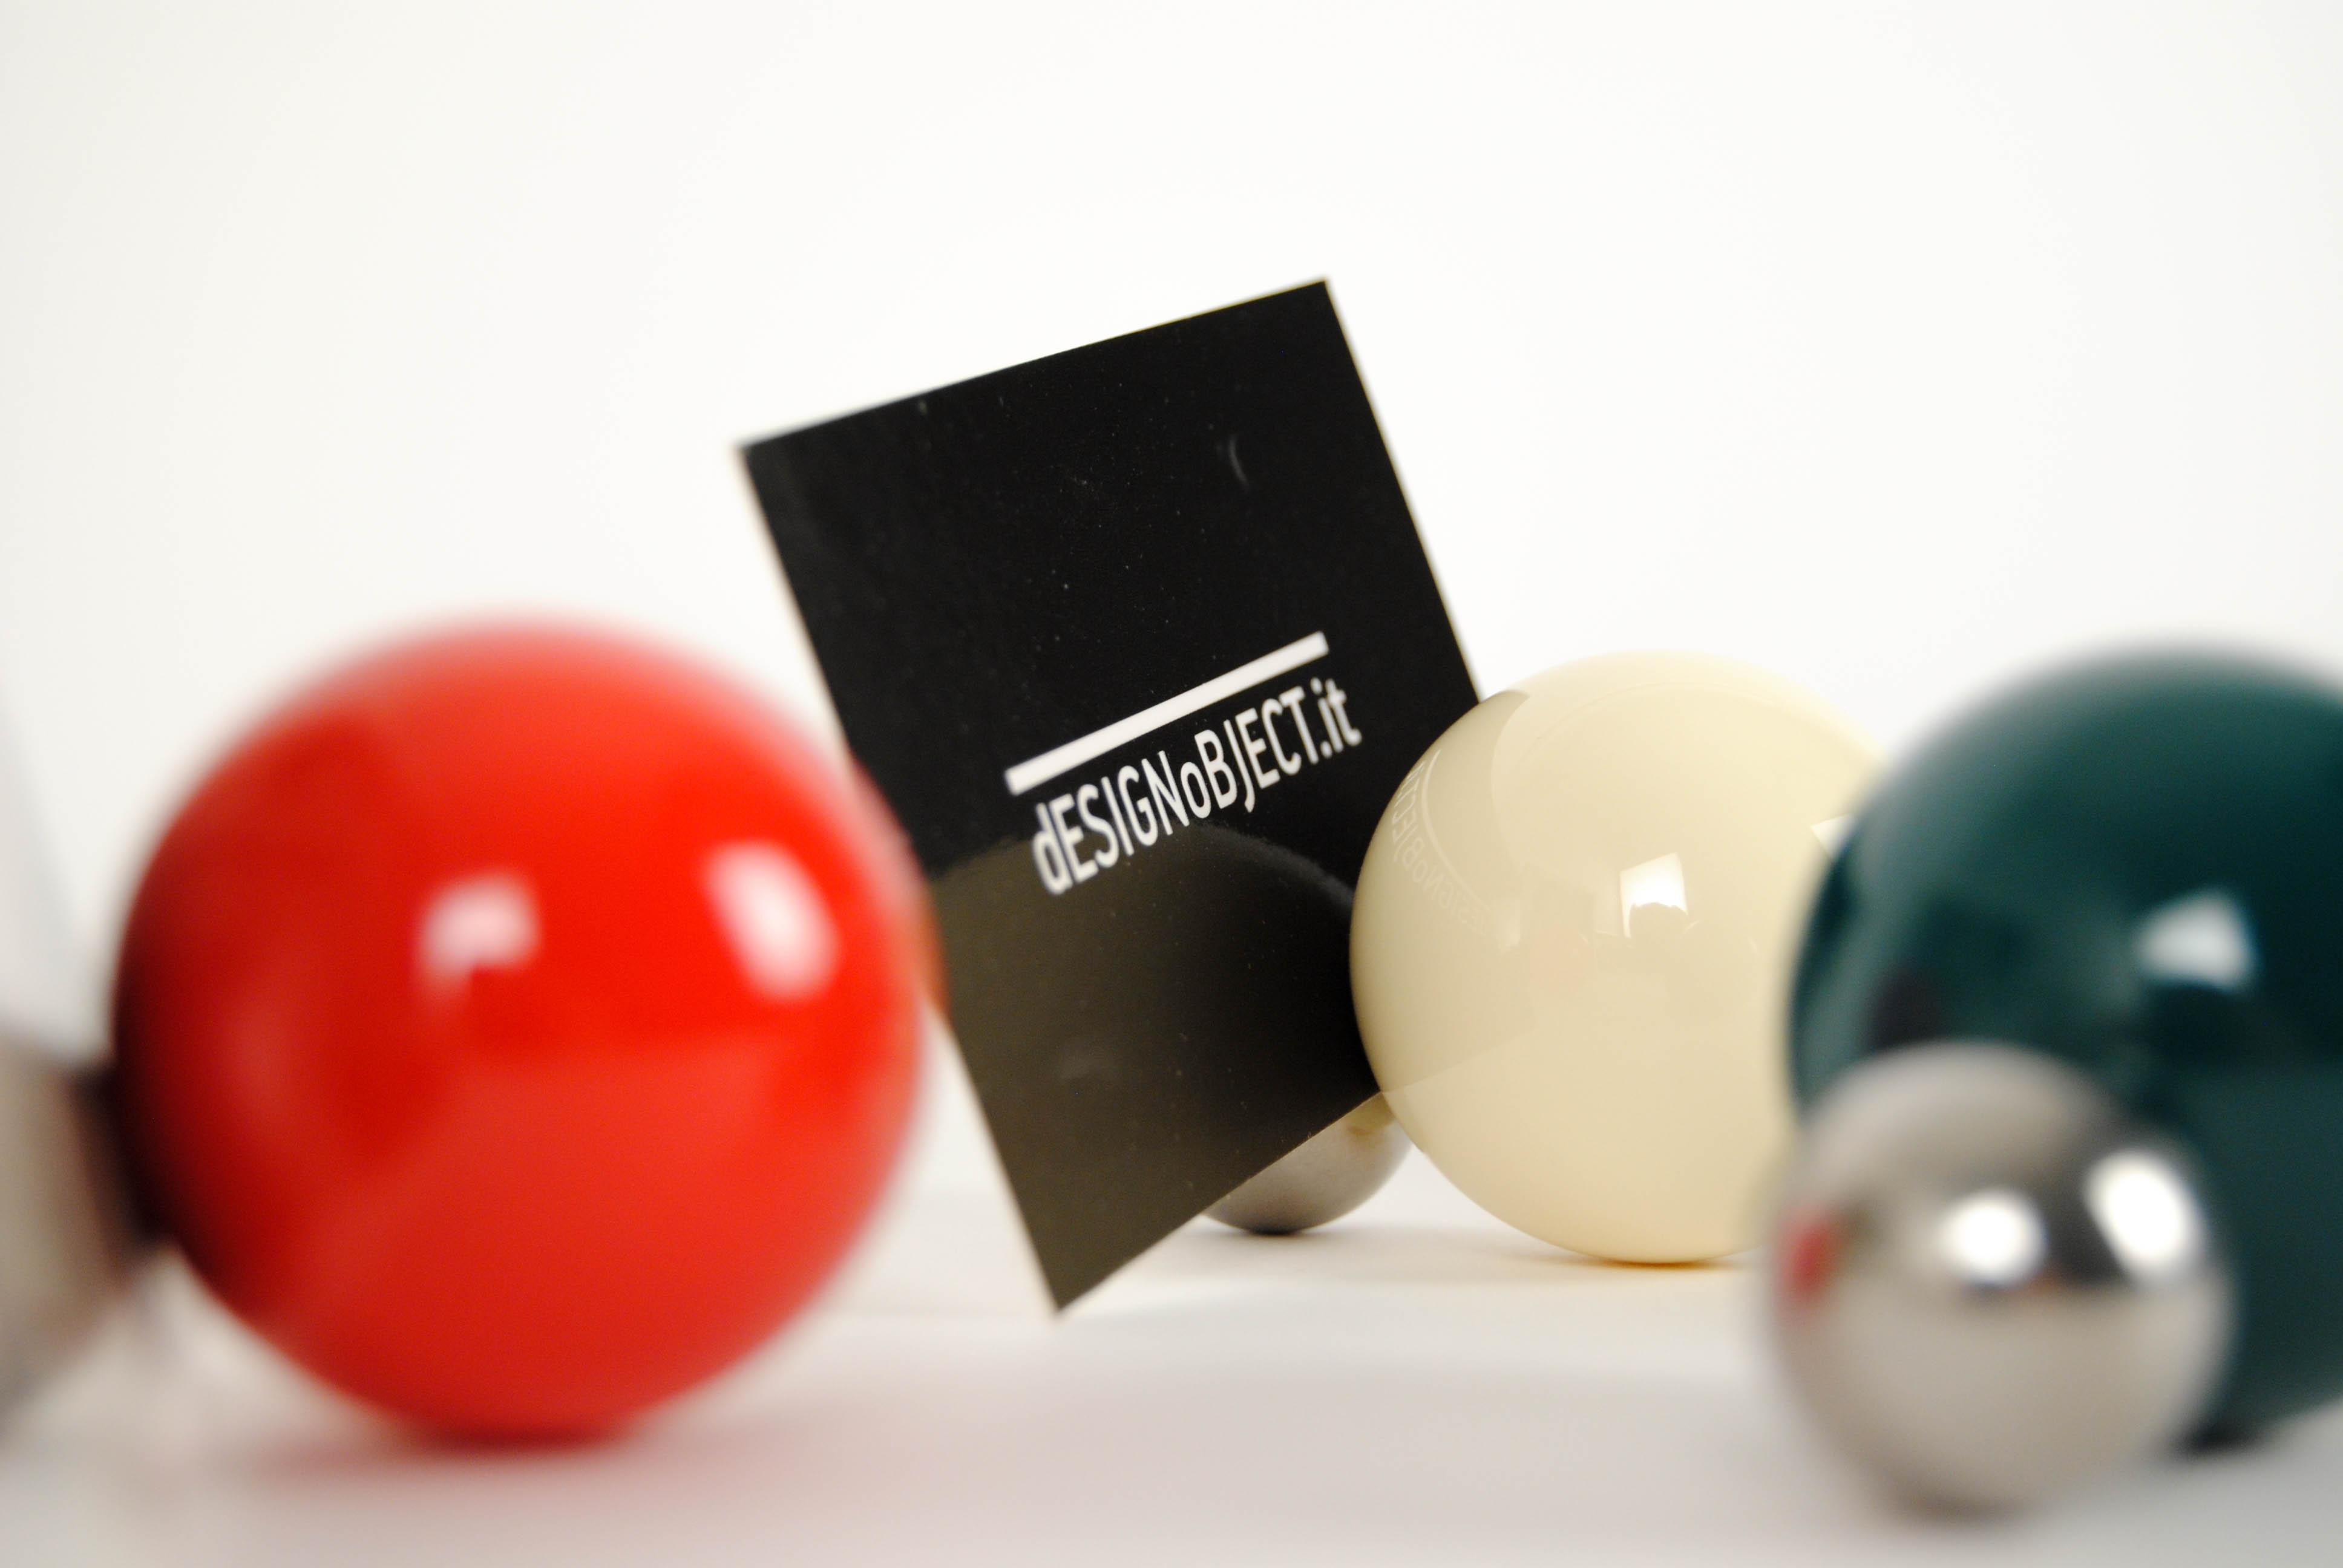 tac photo holders with magnetic balls colored in white and red